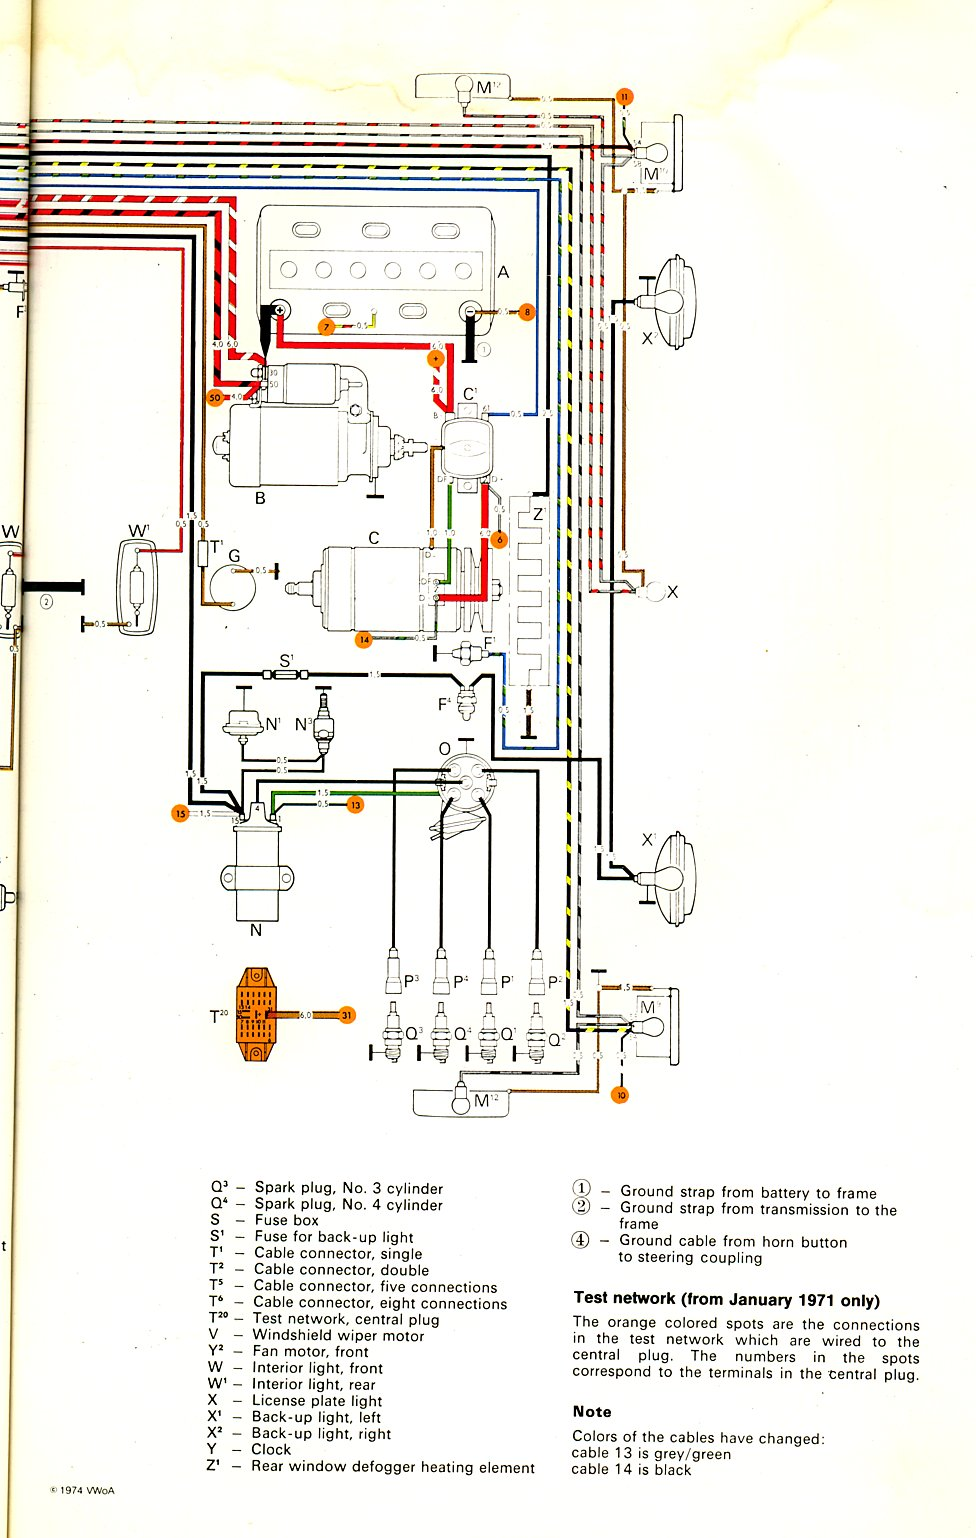 medium resolution of thesamba com type 2 wiring diagrams rh thesamba com 92 f150 wiring diagram 92 f150 wiring